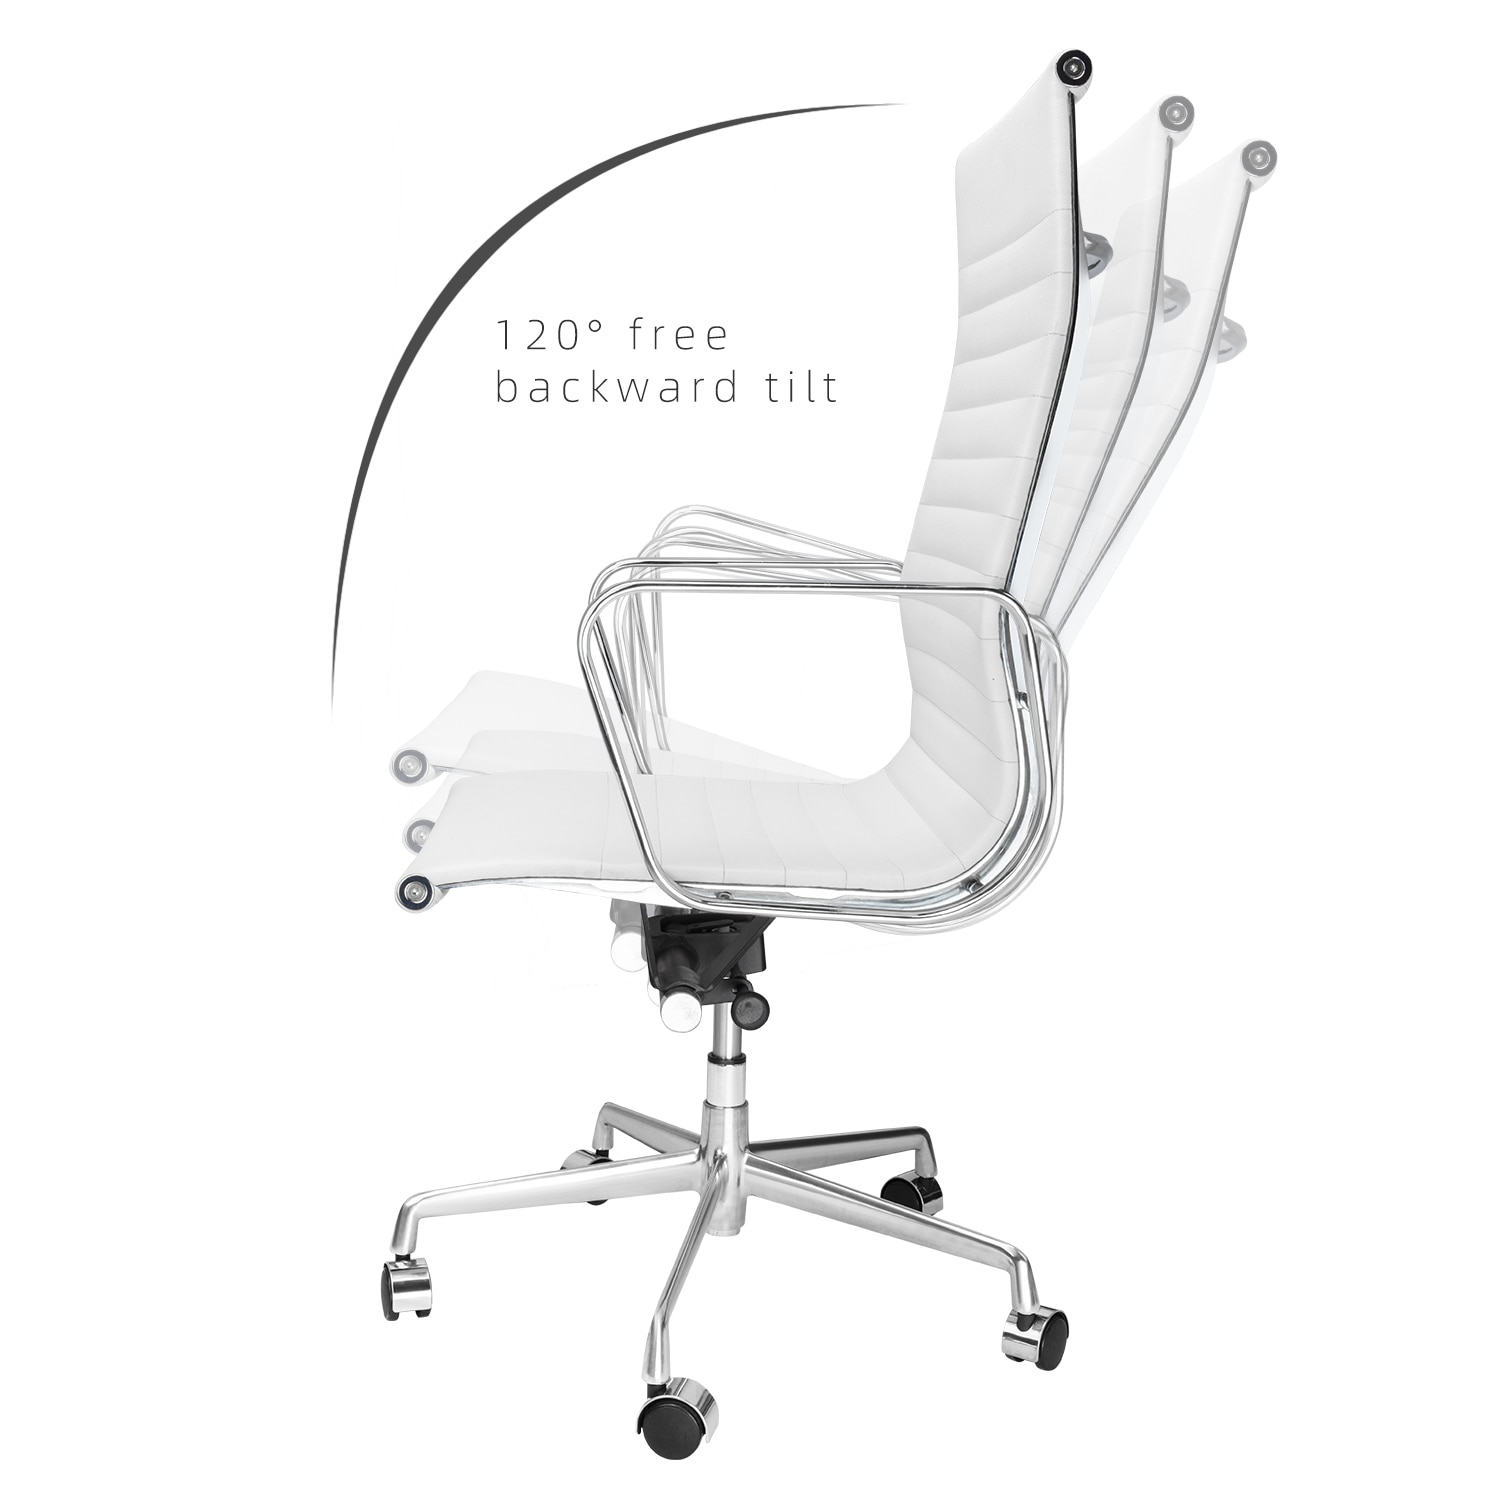 H20004cb8237c424ebd274afa48bdb1737 - High Back Aluminium Group Office Chair Replica Swivel Chair with Armrests Chromed Base Gaming Chair for Office Meeting Room